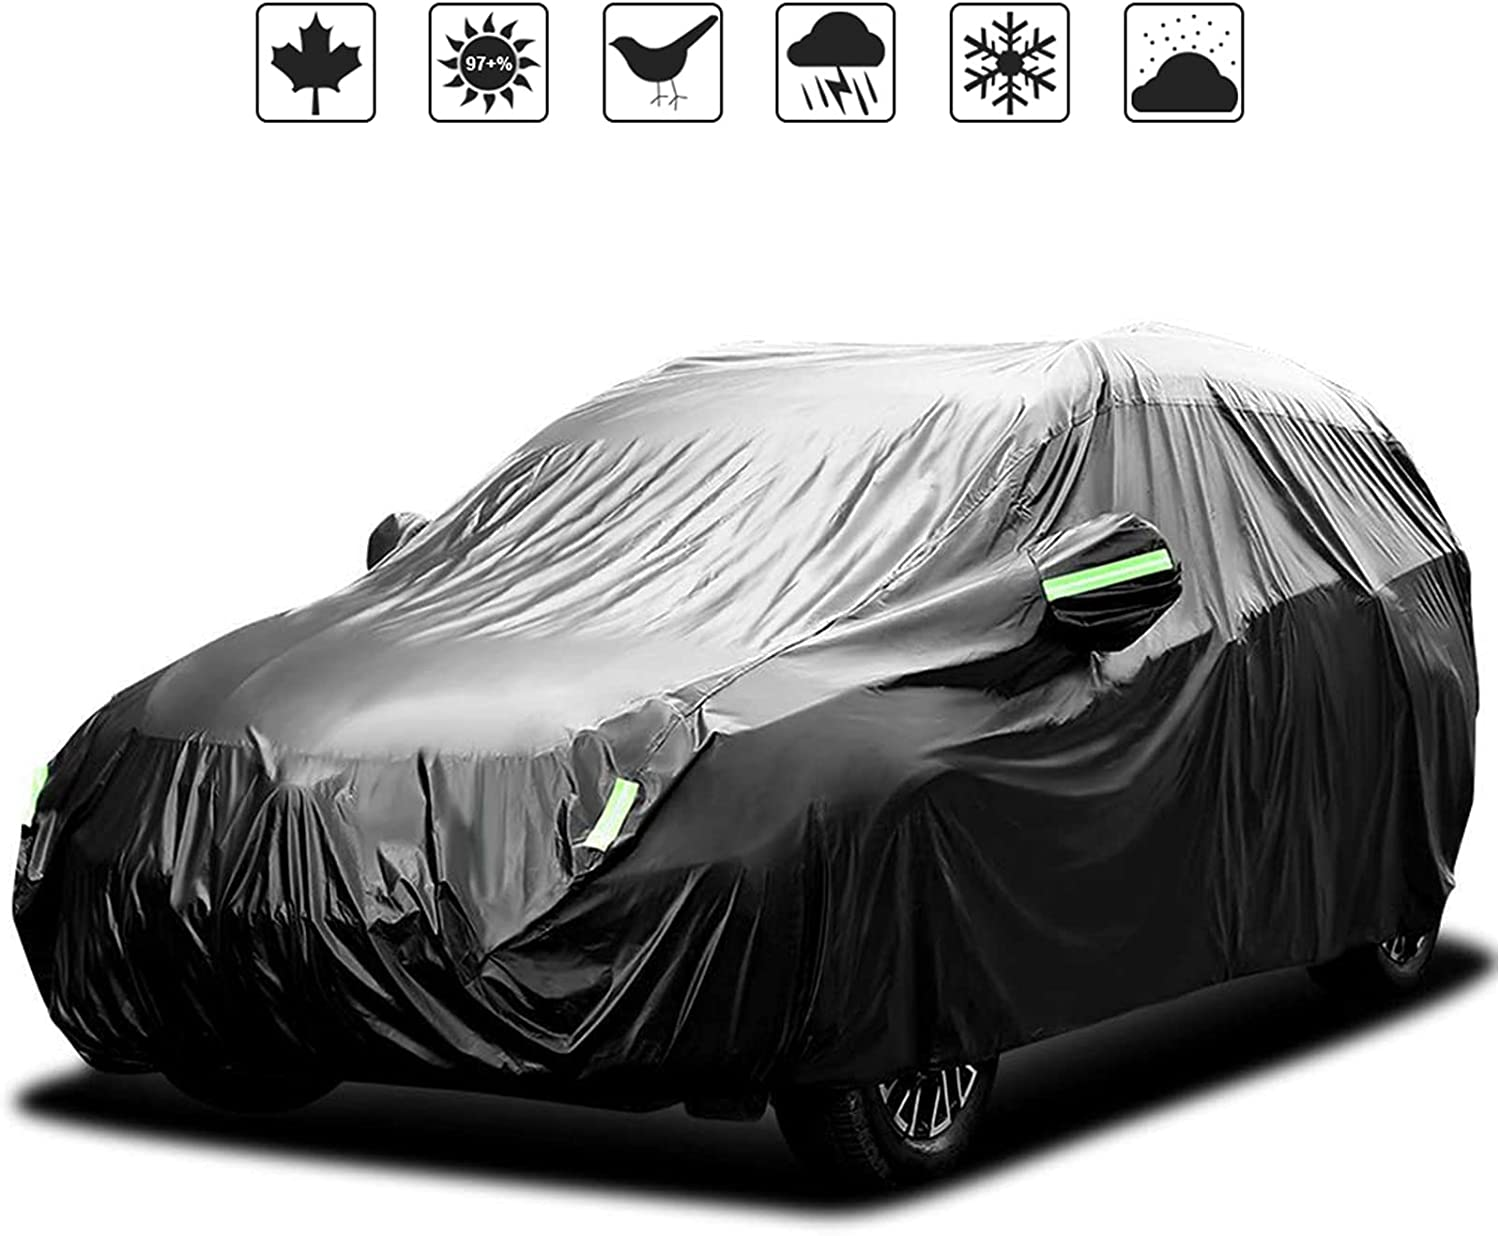 NEVERLAND Waterproof Car Cover All Weather Snowproof Product Anti-UV Du Ranking integrated 1st place